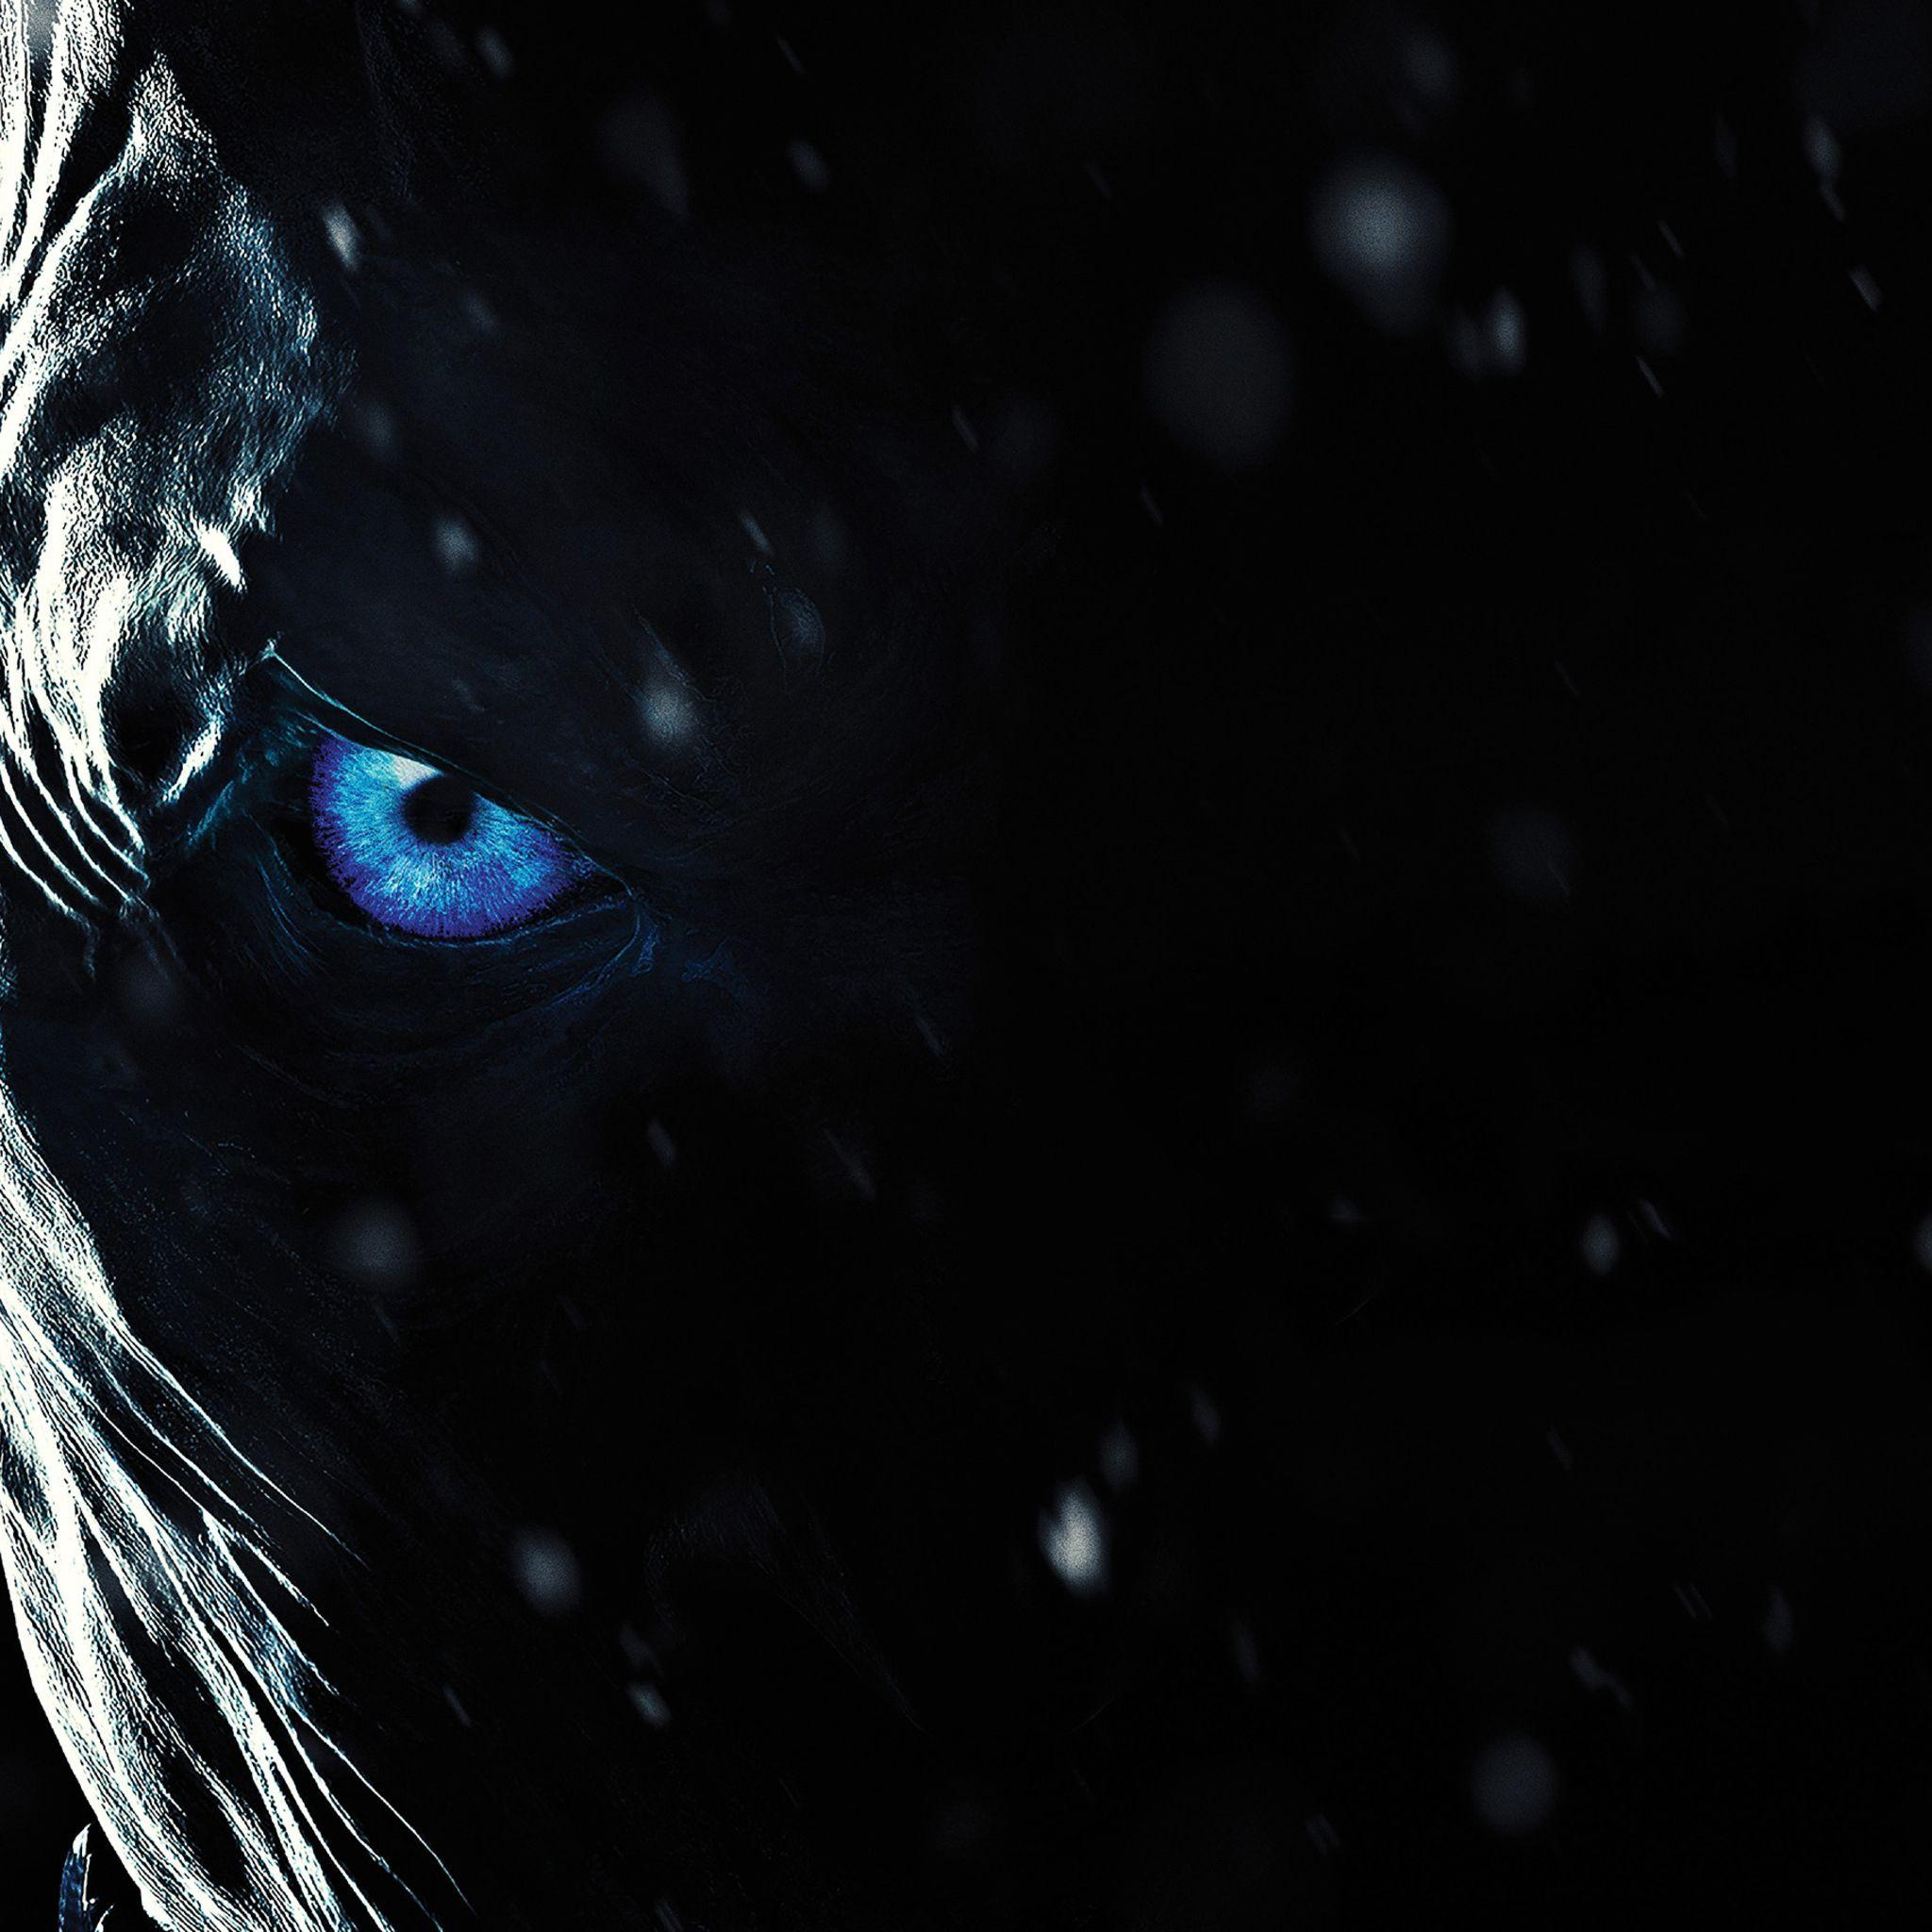 Game Of Thrones Throne Wallpaper: Game Of Thrones Season 7 Wallpapers